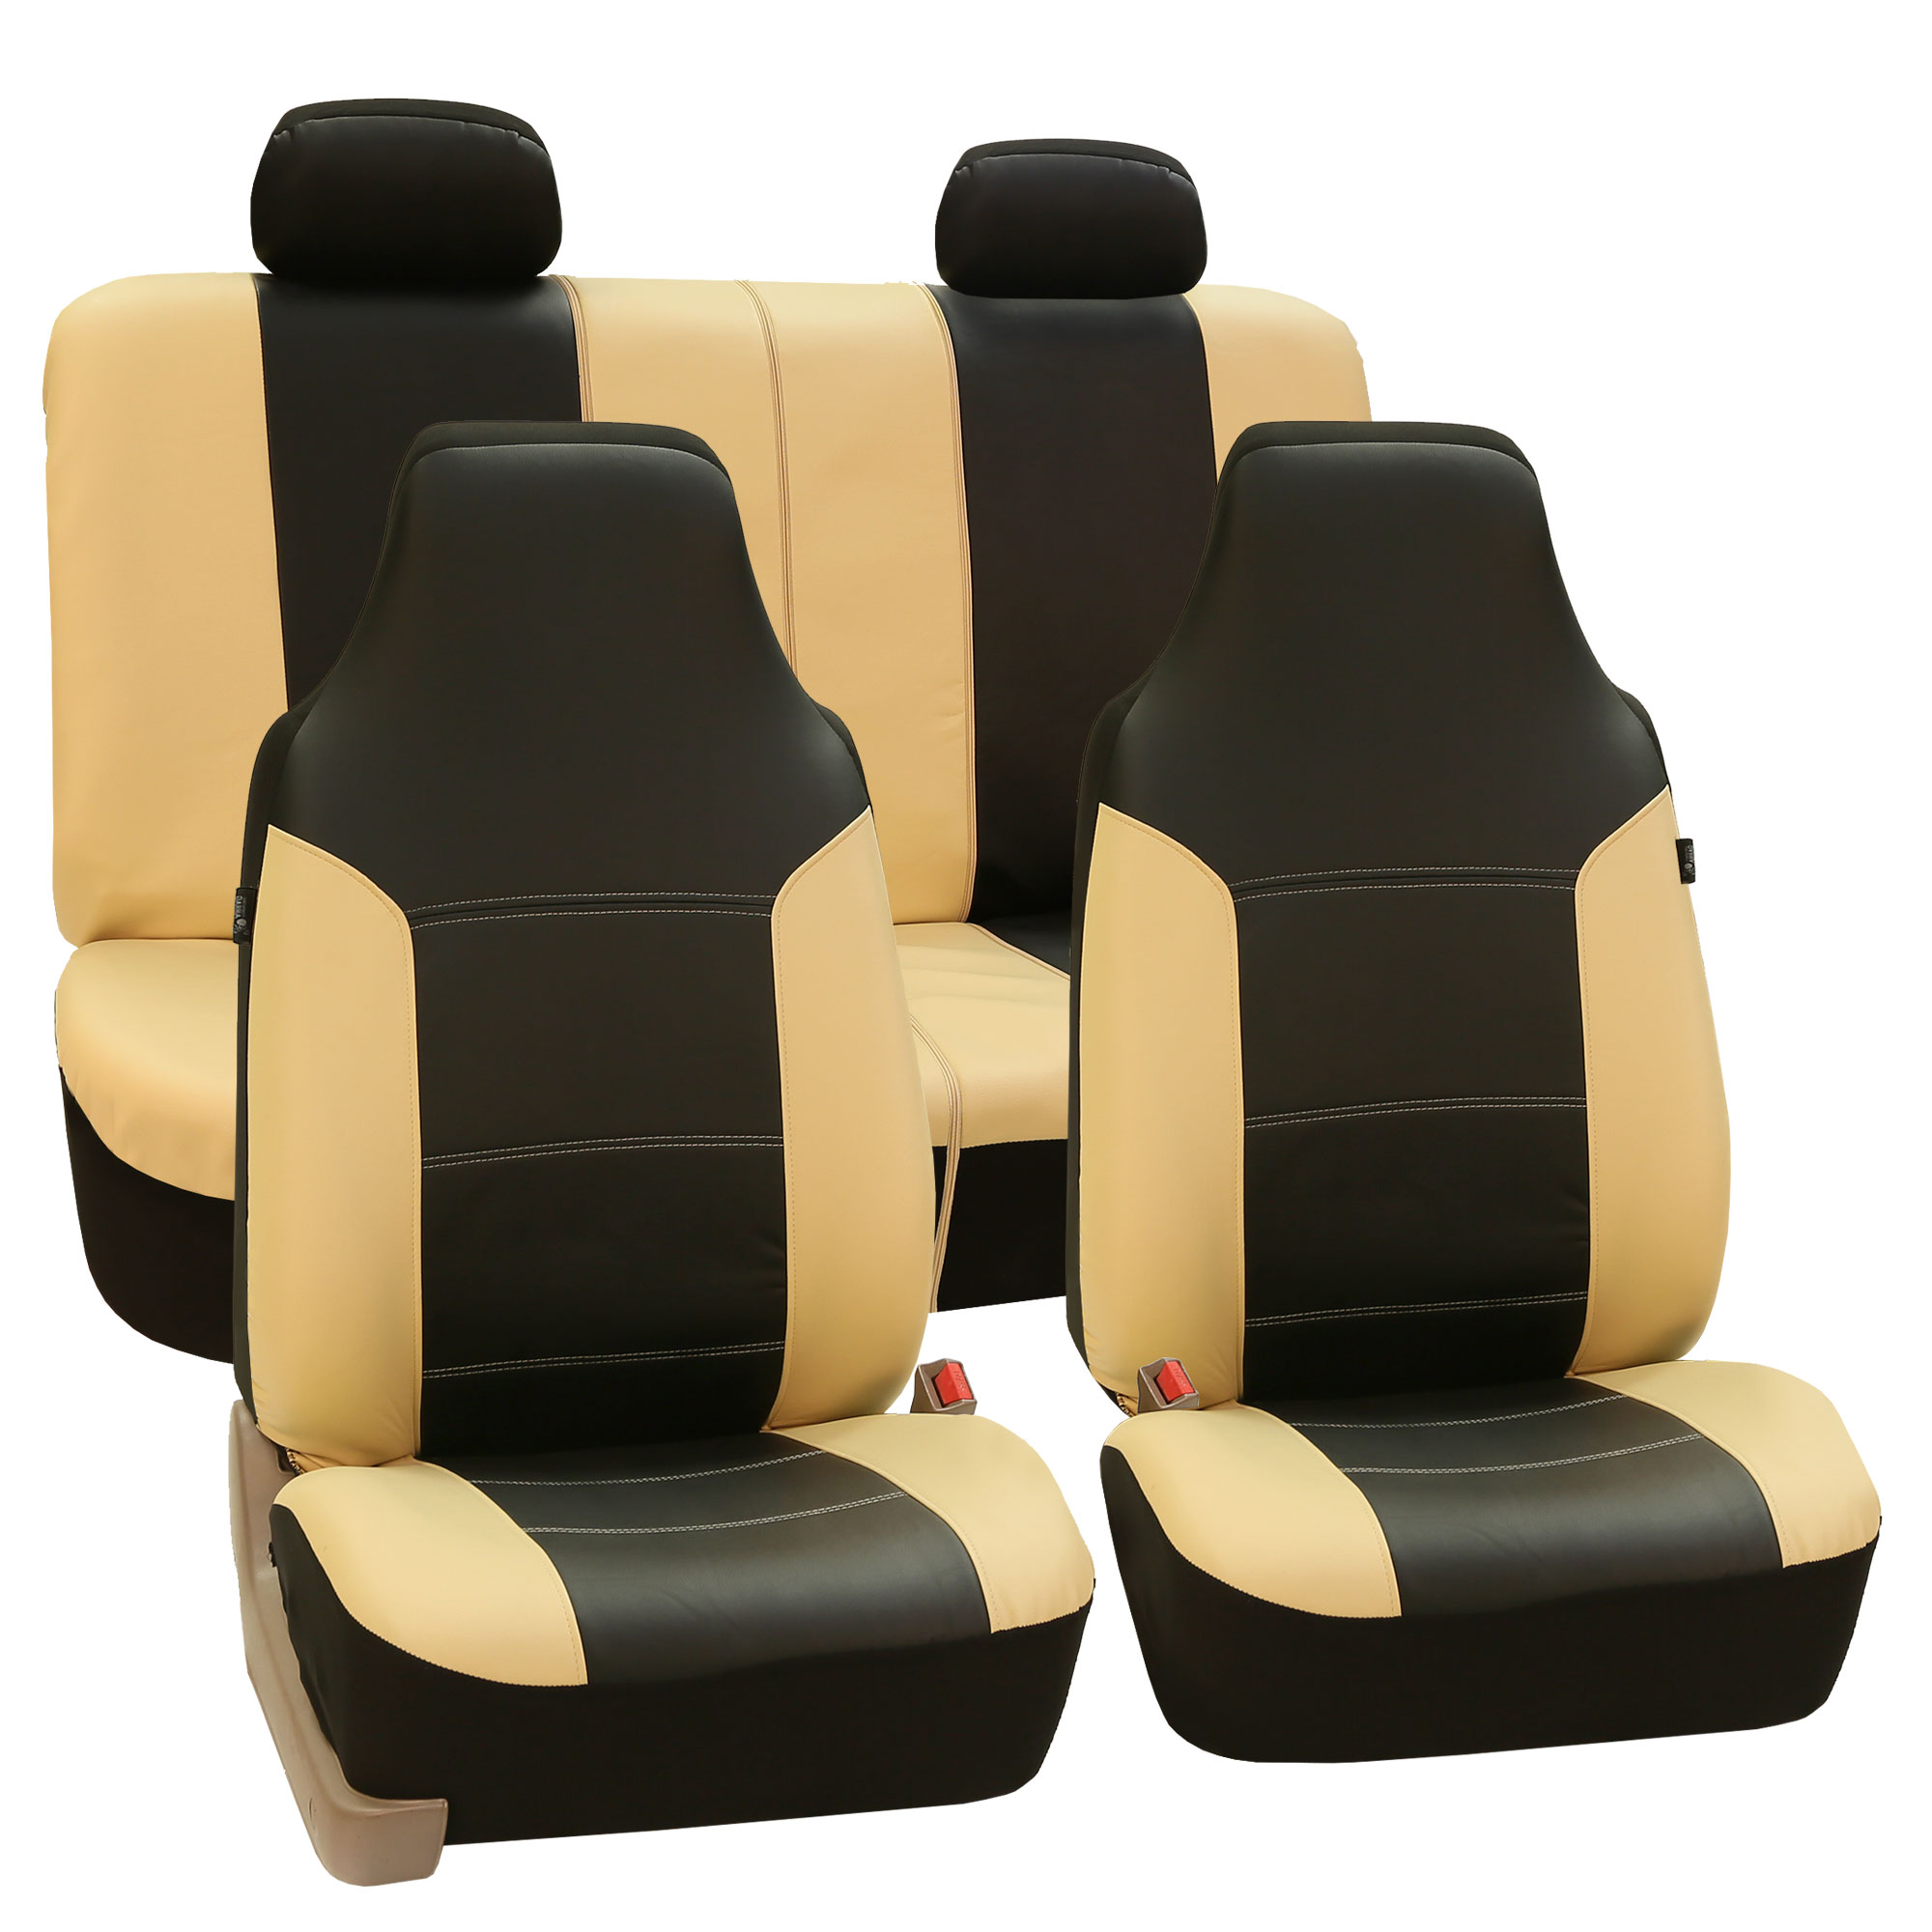 Luxury PU Leather Car Seat Cover Sporty Look Beige For Car